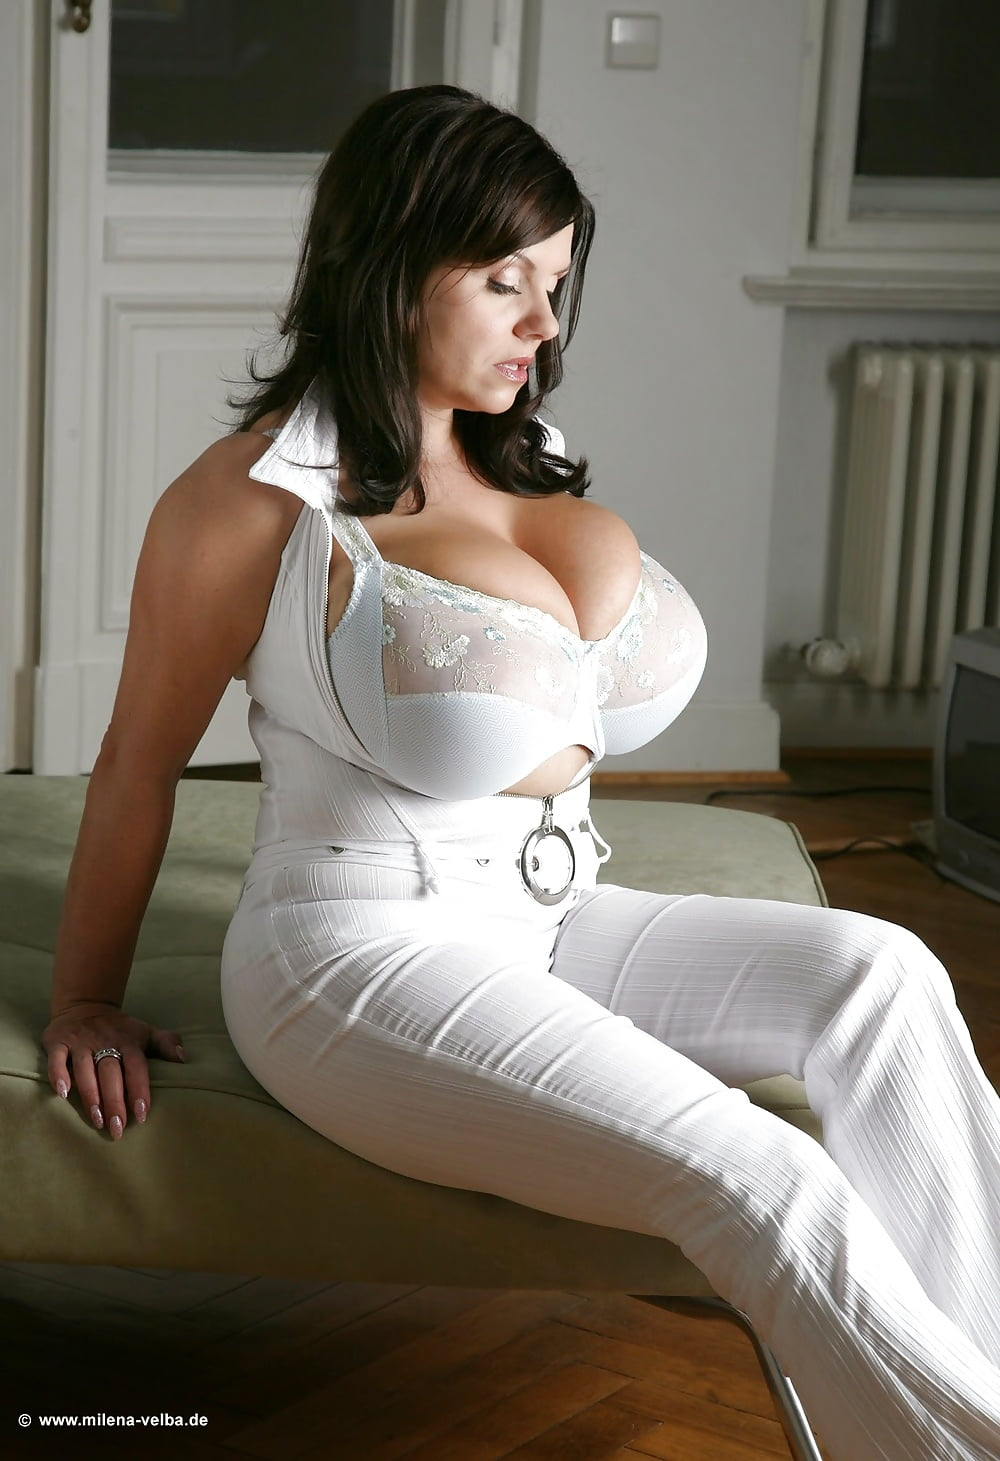 rallos-busty-white-women-breeski